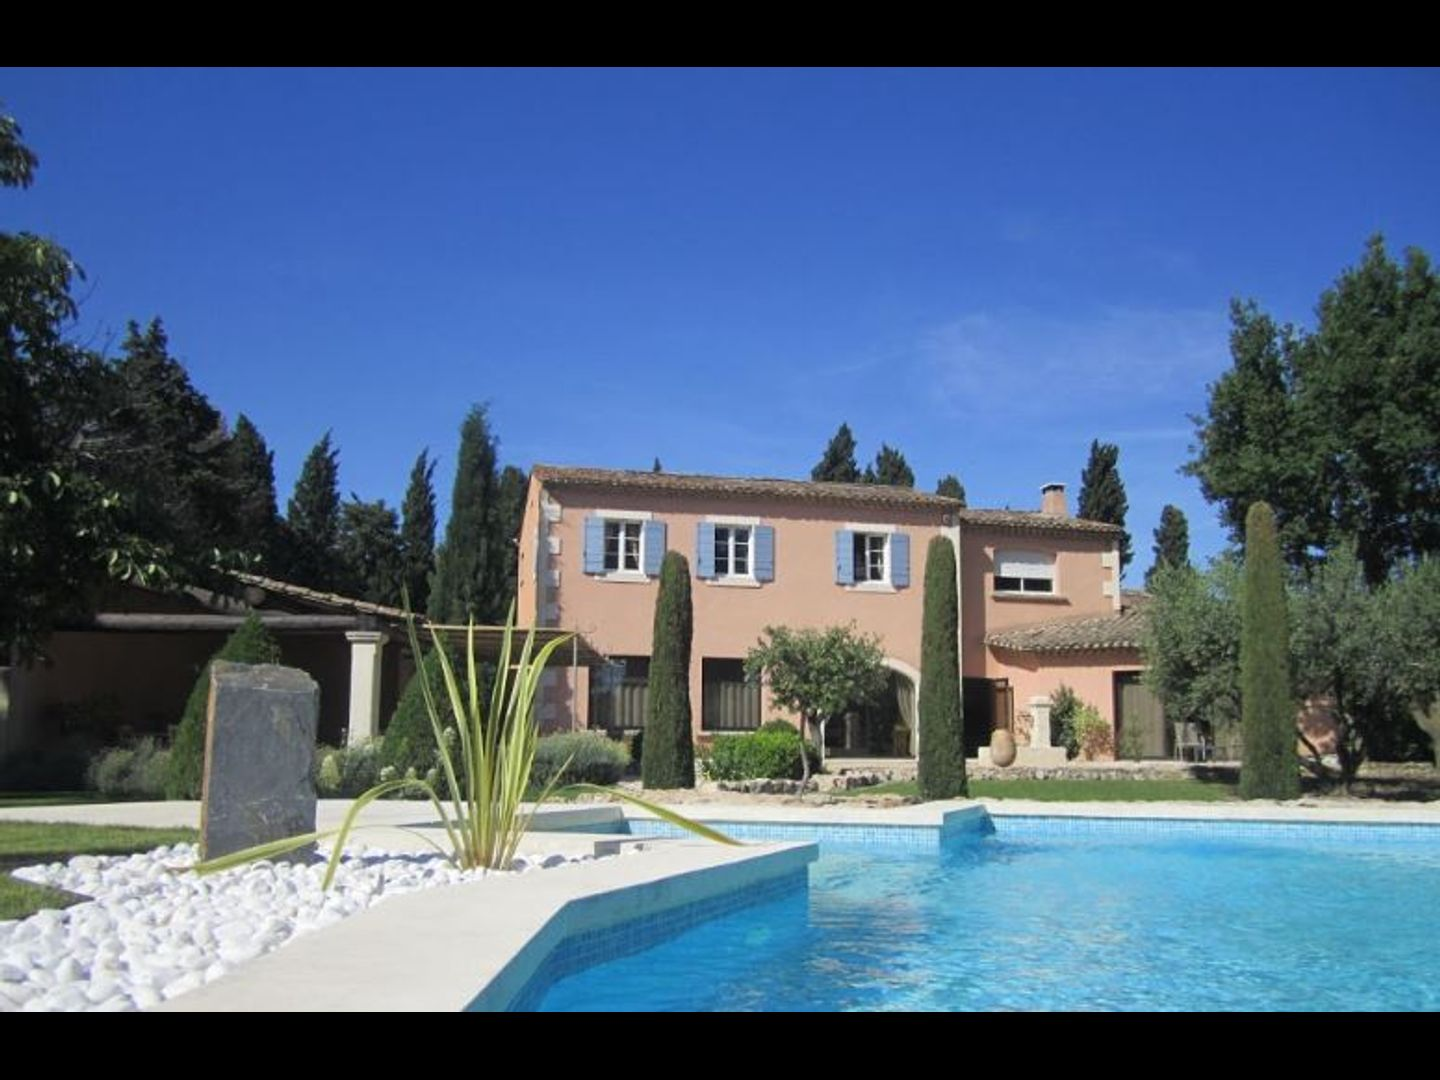 A group of palm trees with a building in the background at Le Clos Des Cyprès.